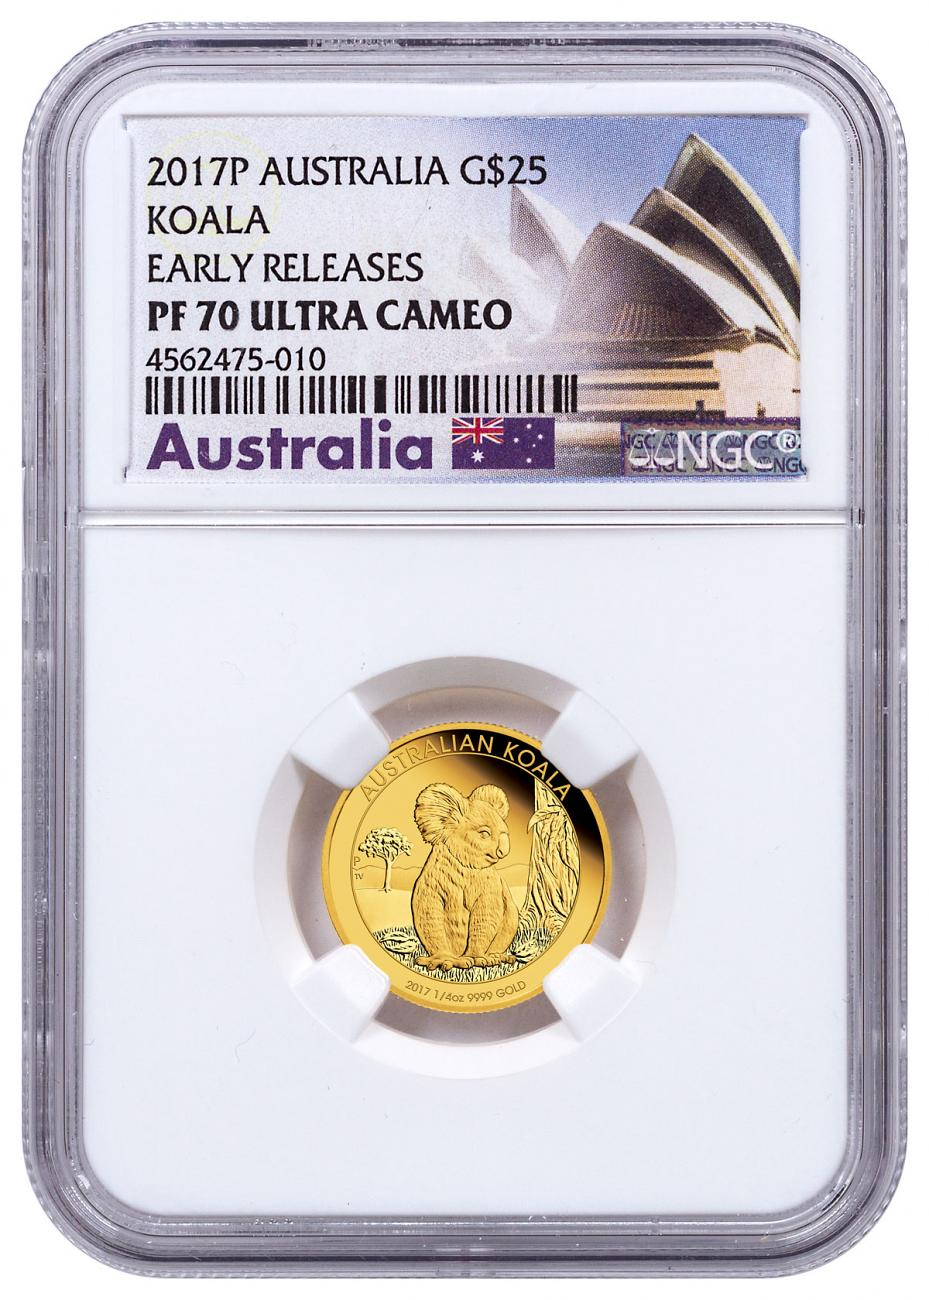 2017-P Australia 1/4 oz Gold Koala - Proof $25 Coin NGC PF70 UC ER Exclusive Australia Label